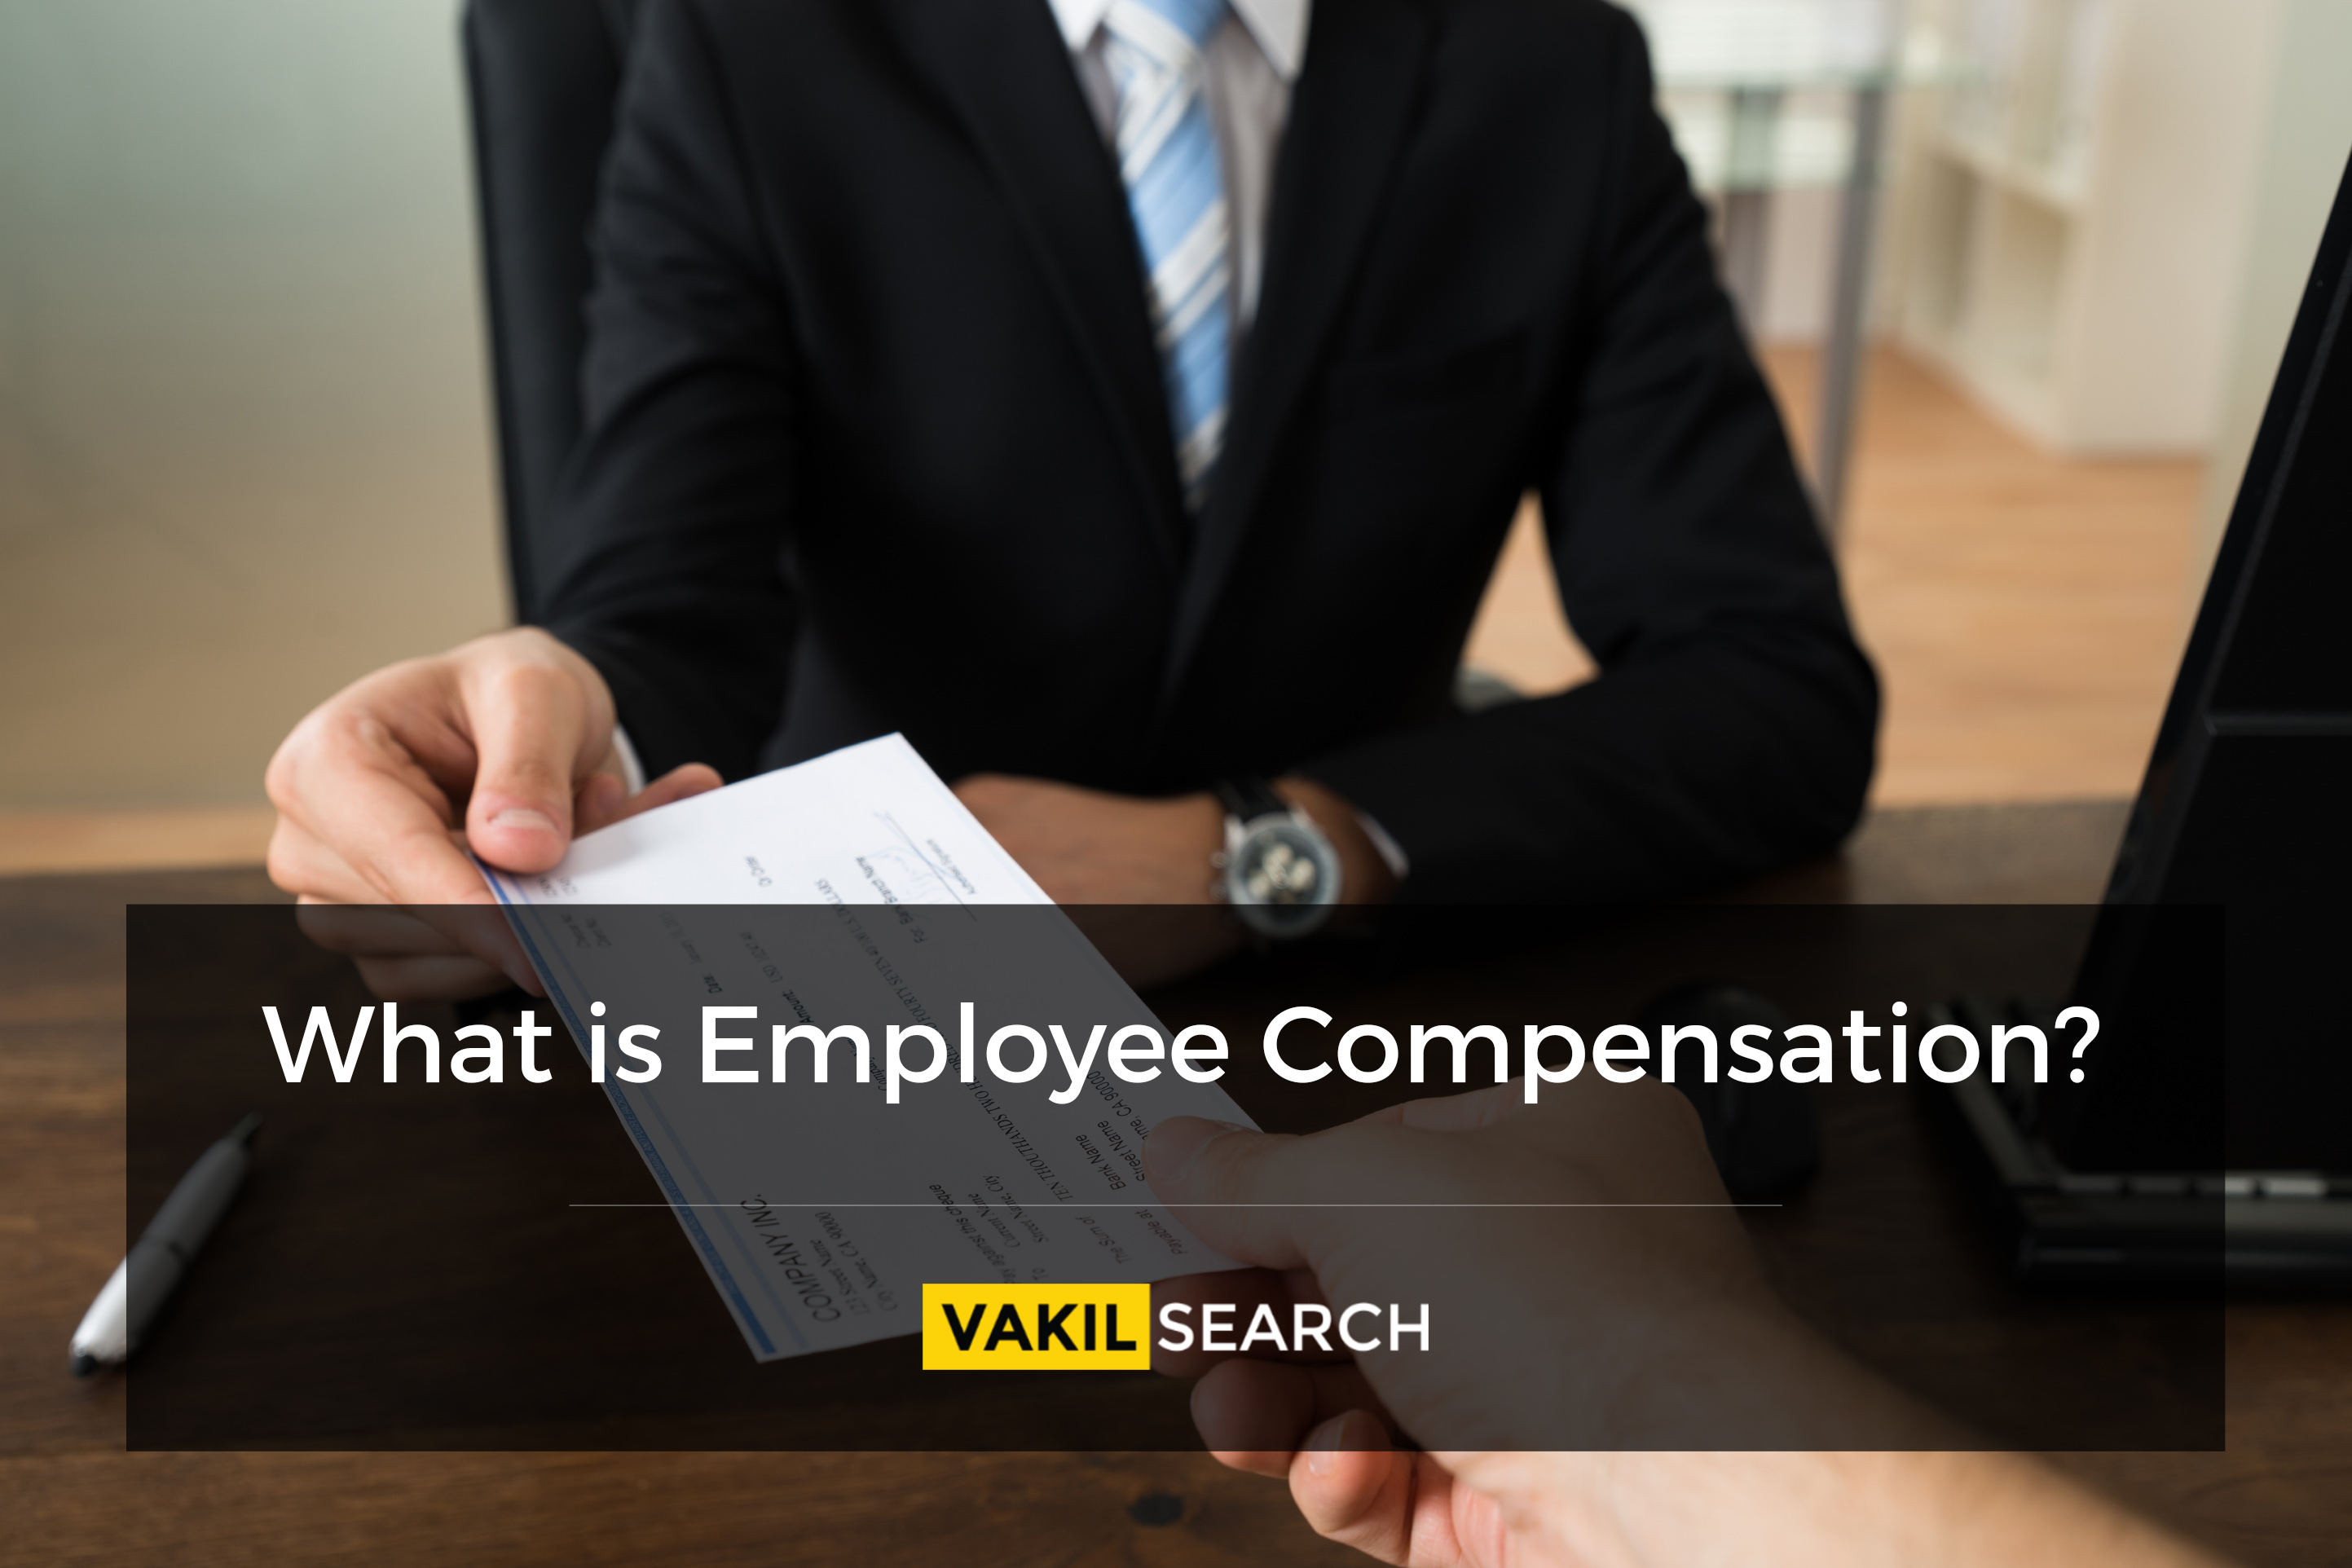 What is Employee Compensation?